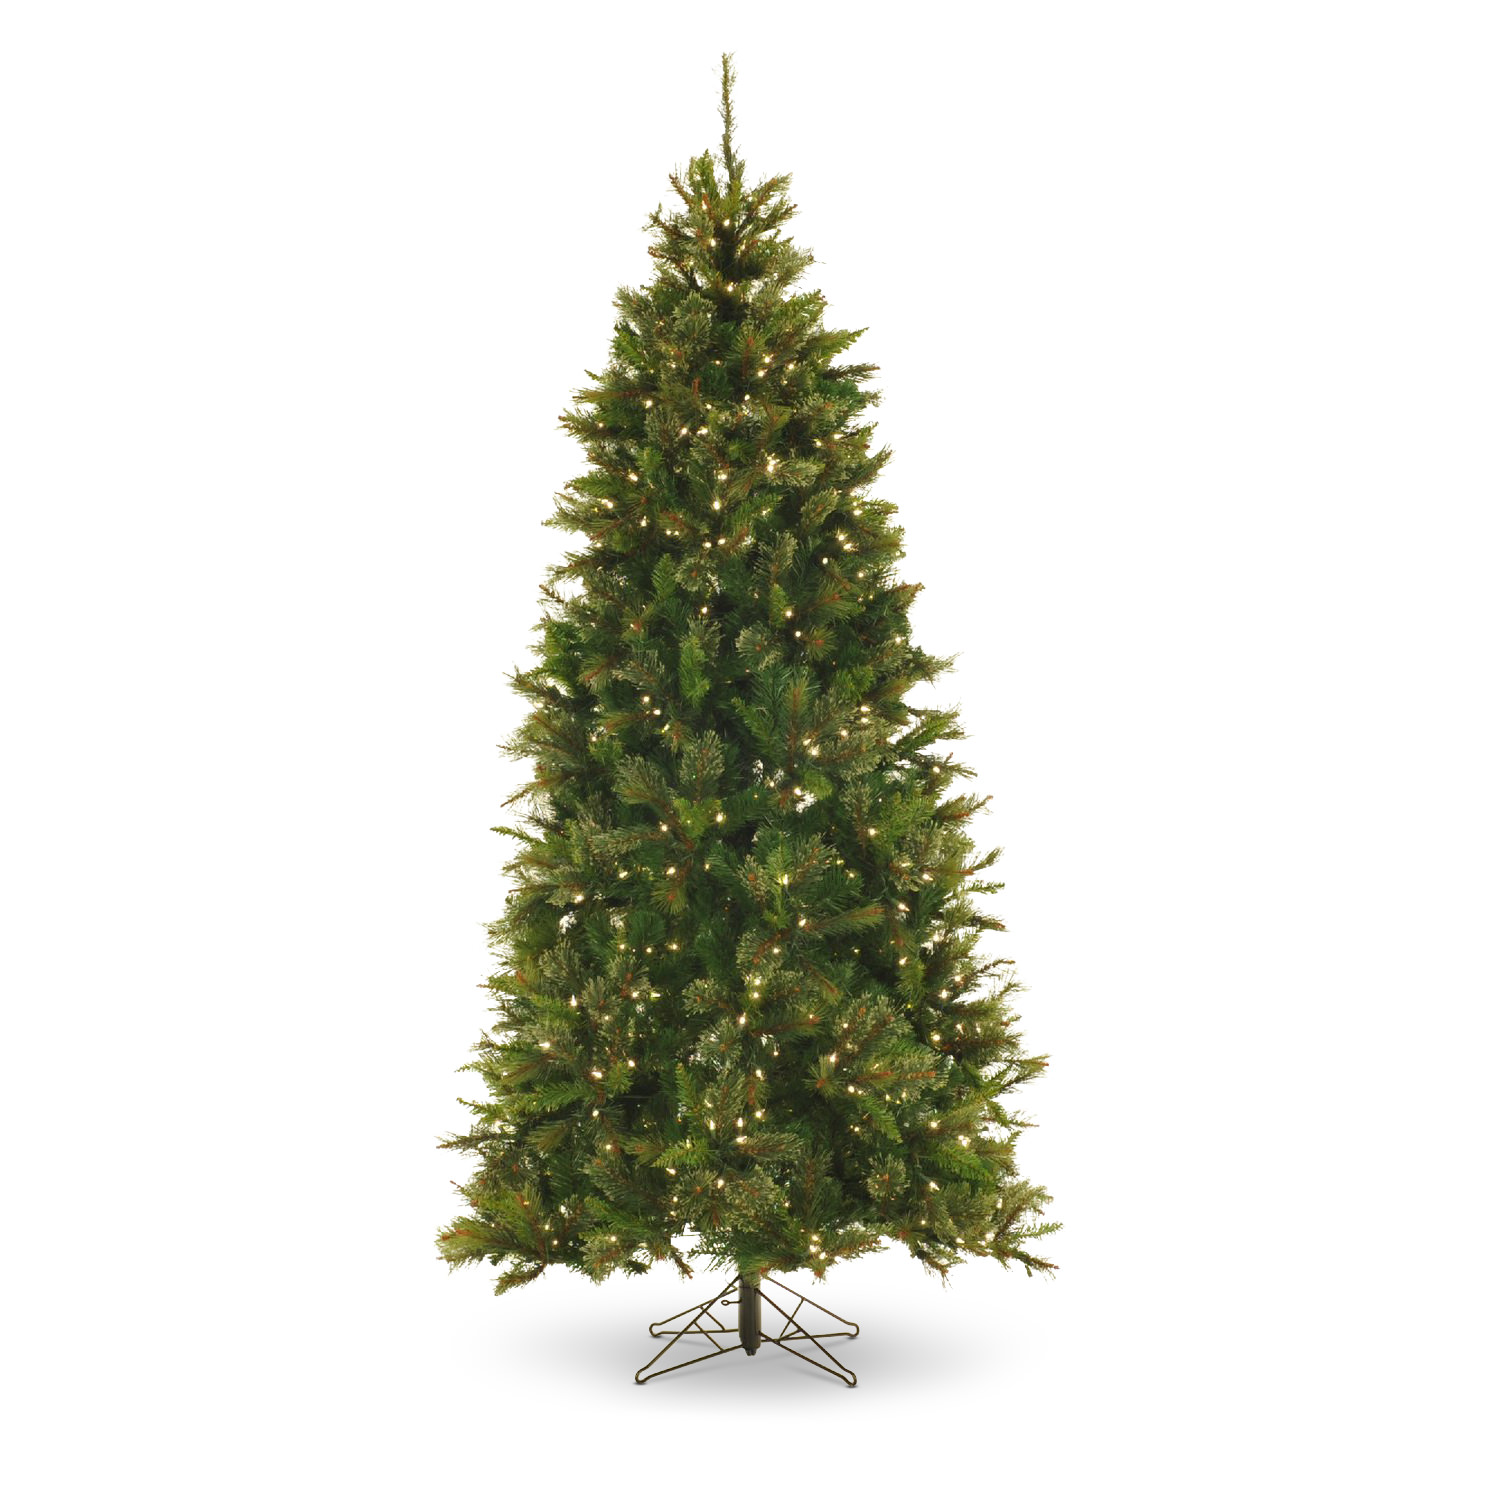 northwoods pine 75u2032 prelit artificial christmas tree clear lights - Fake Christmas Trees